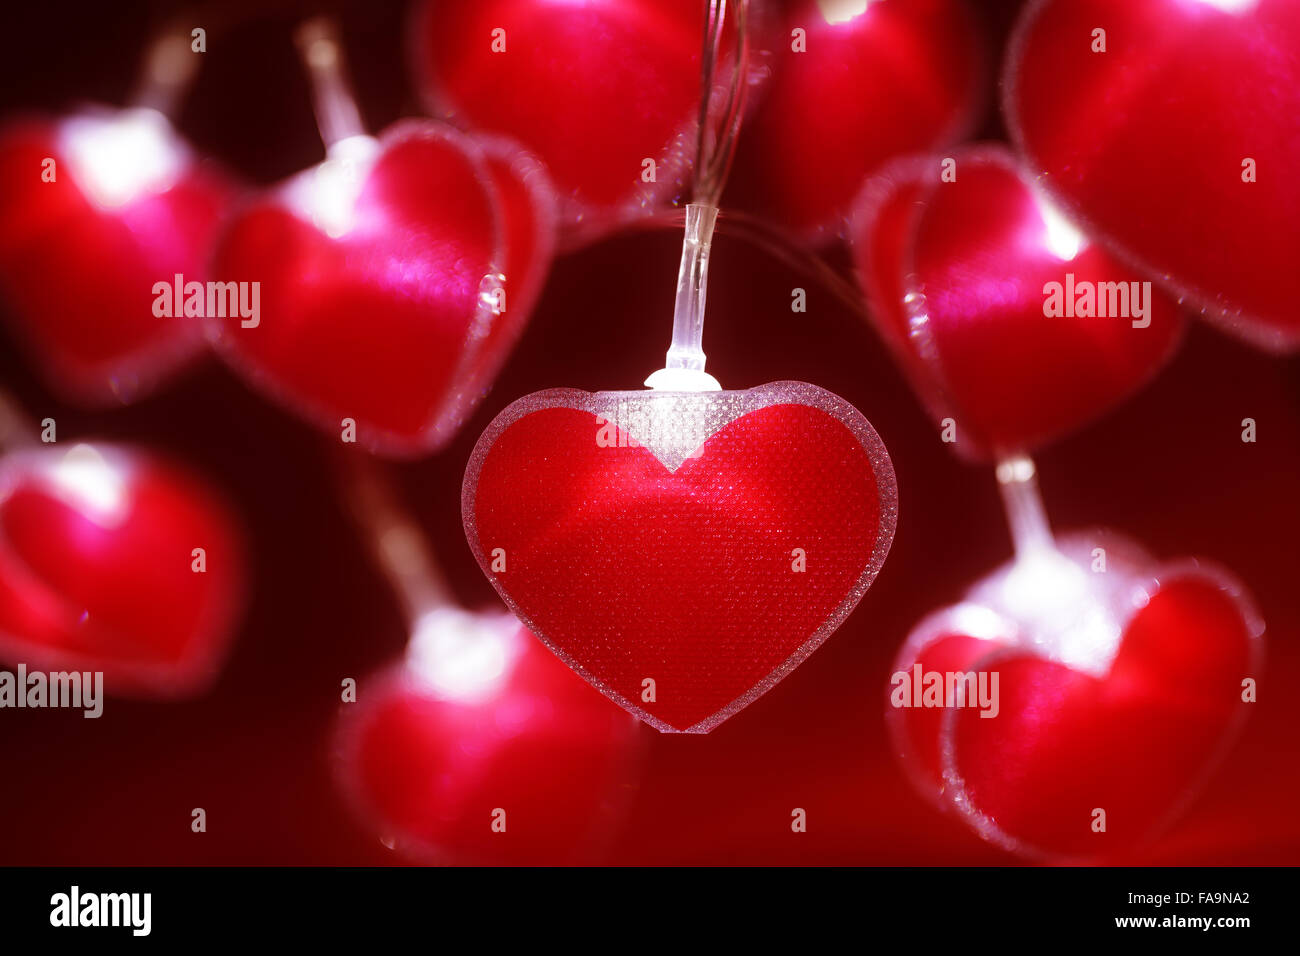 Red heart fairy lights Valentine's day background - Stock Image